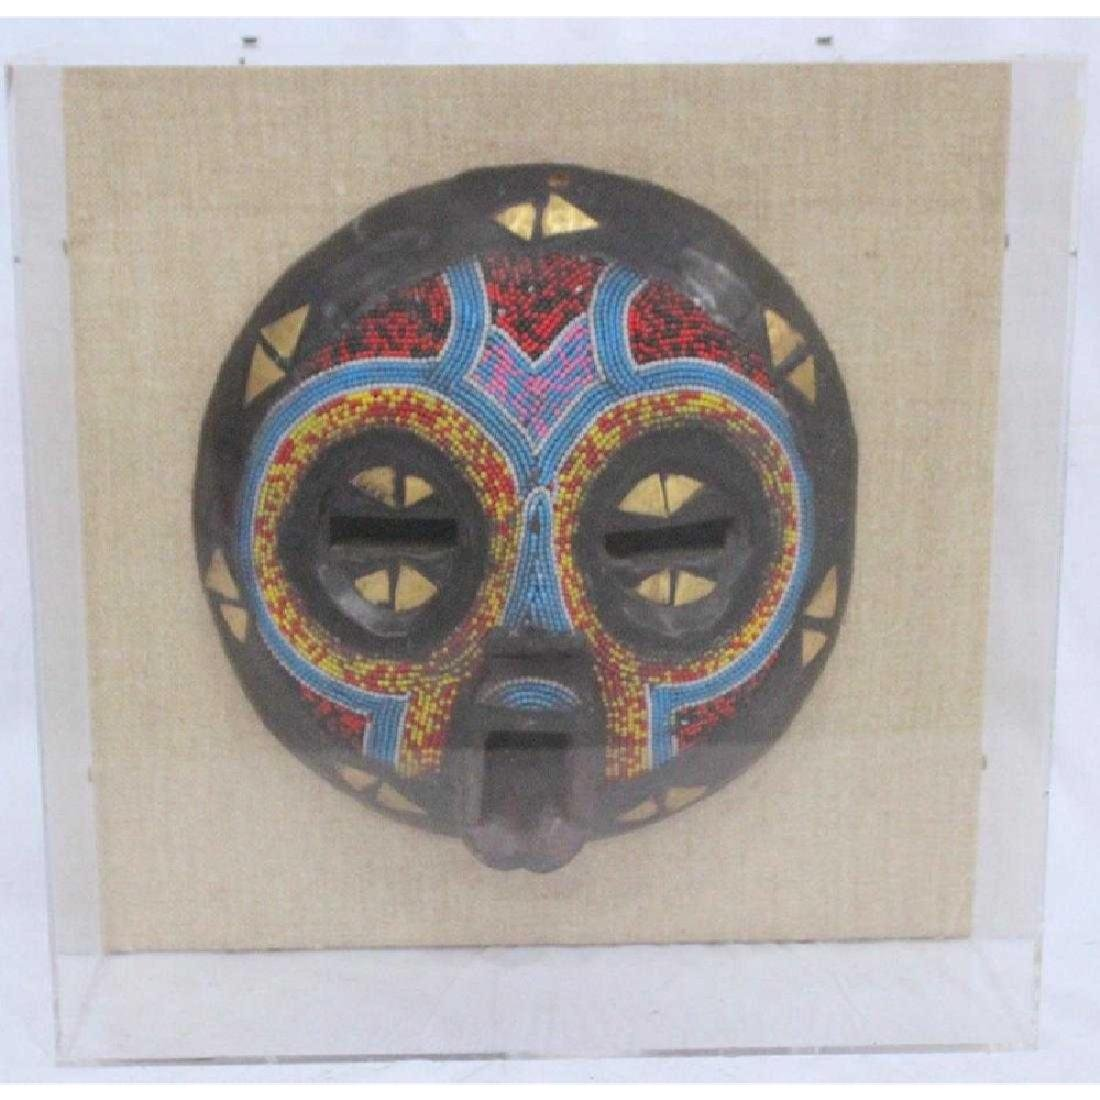 African Tribal Beaded & Wooden Masks Fitted Plexiglass